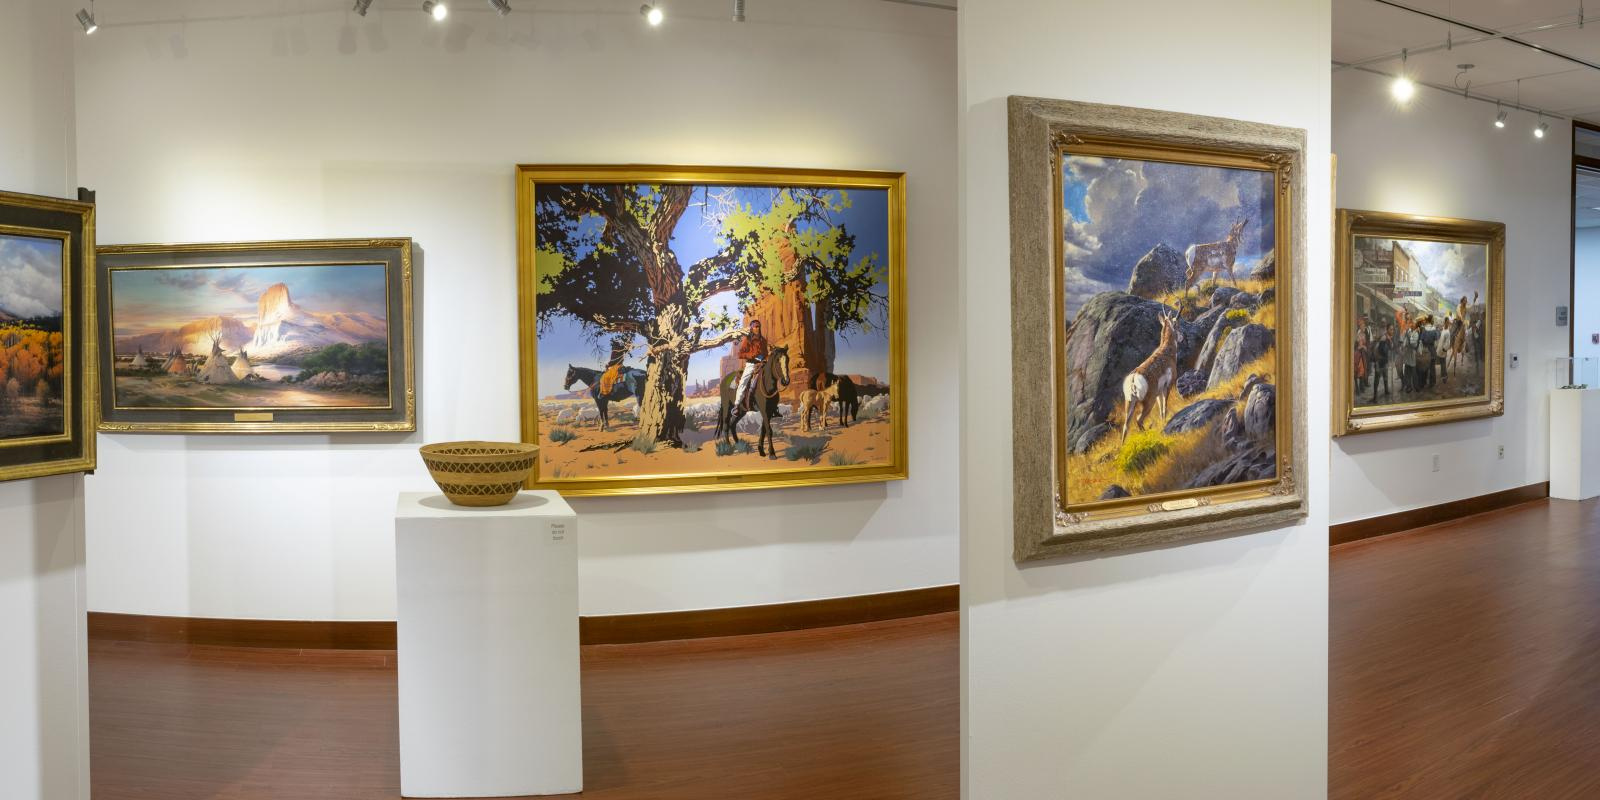 """Installation View, Center of gallery, """"Art of the West: New Acquisitions"""" Exhibition, Jun 24, 2019 to Sep26, 2019, Curator: Michele Cairella Fillmore, Don B. Huntley Gallery, Cal Poly Pomona."""